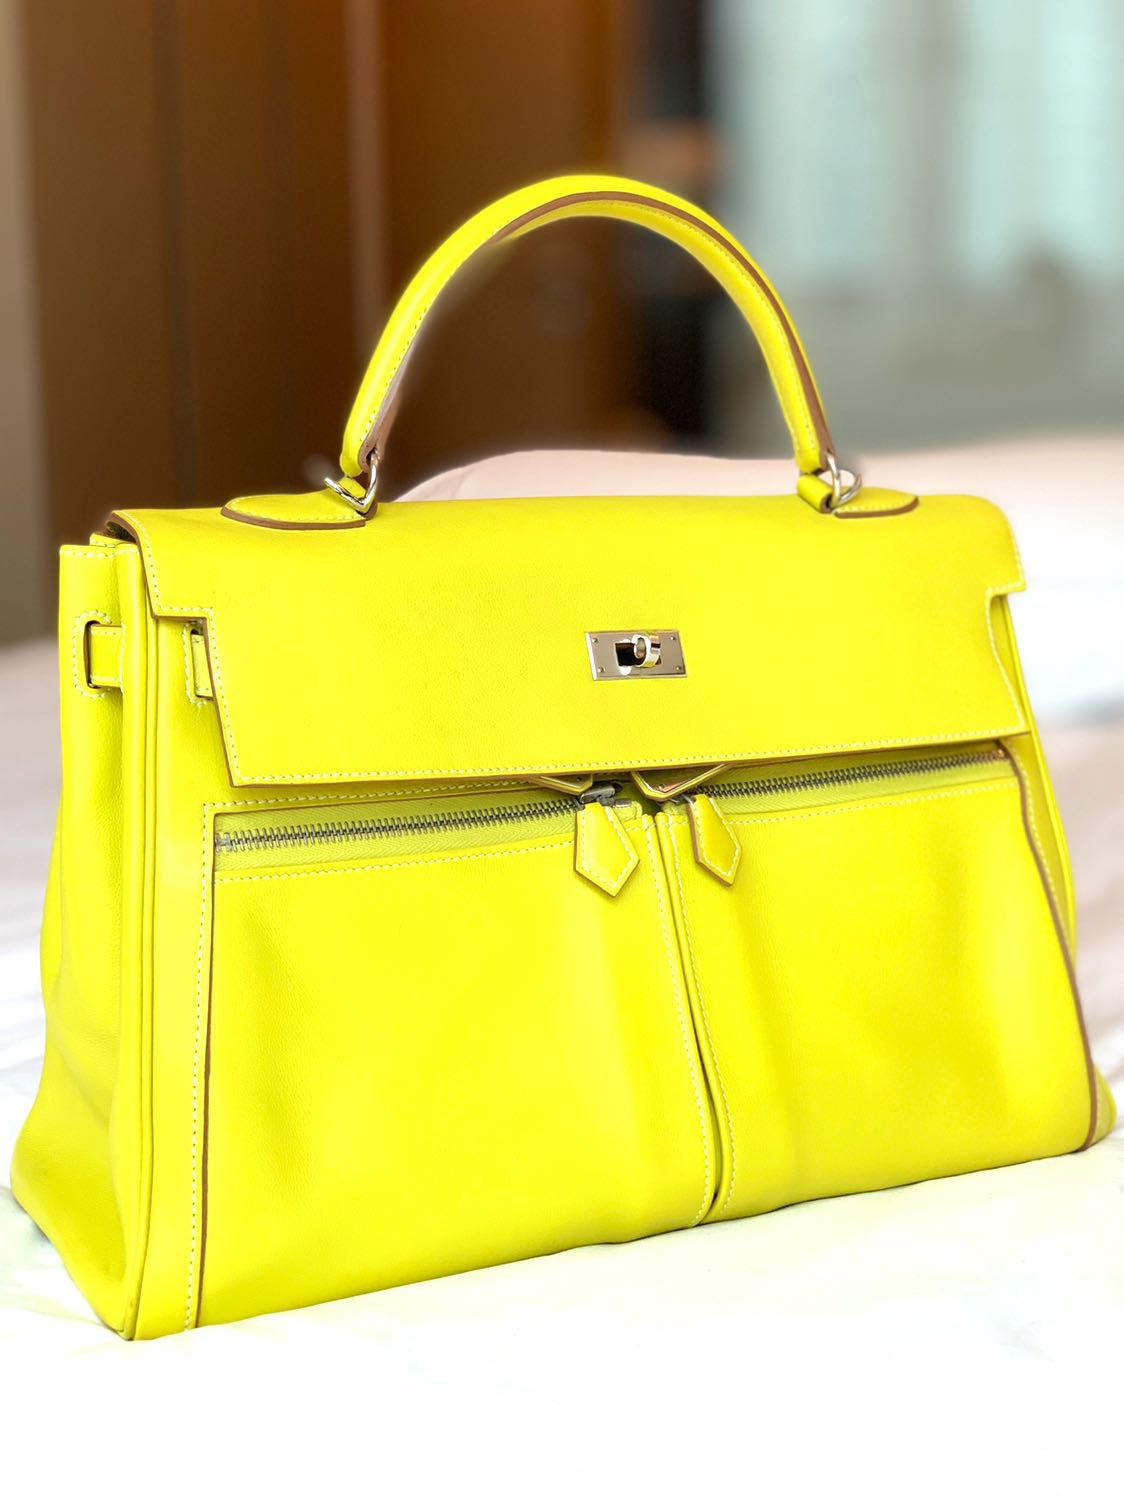 64a7aef5b4 Excellent Hermes Kelly Lakis 35 Lime